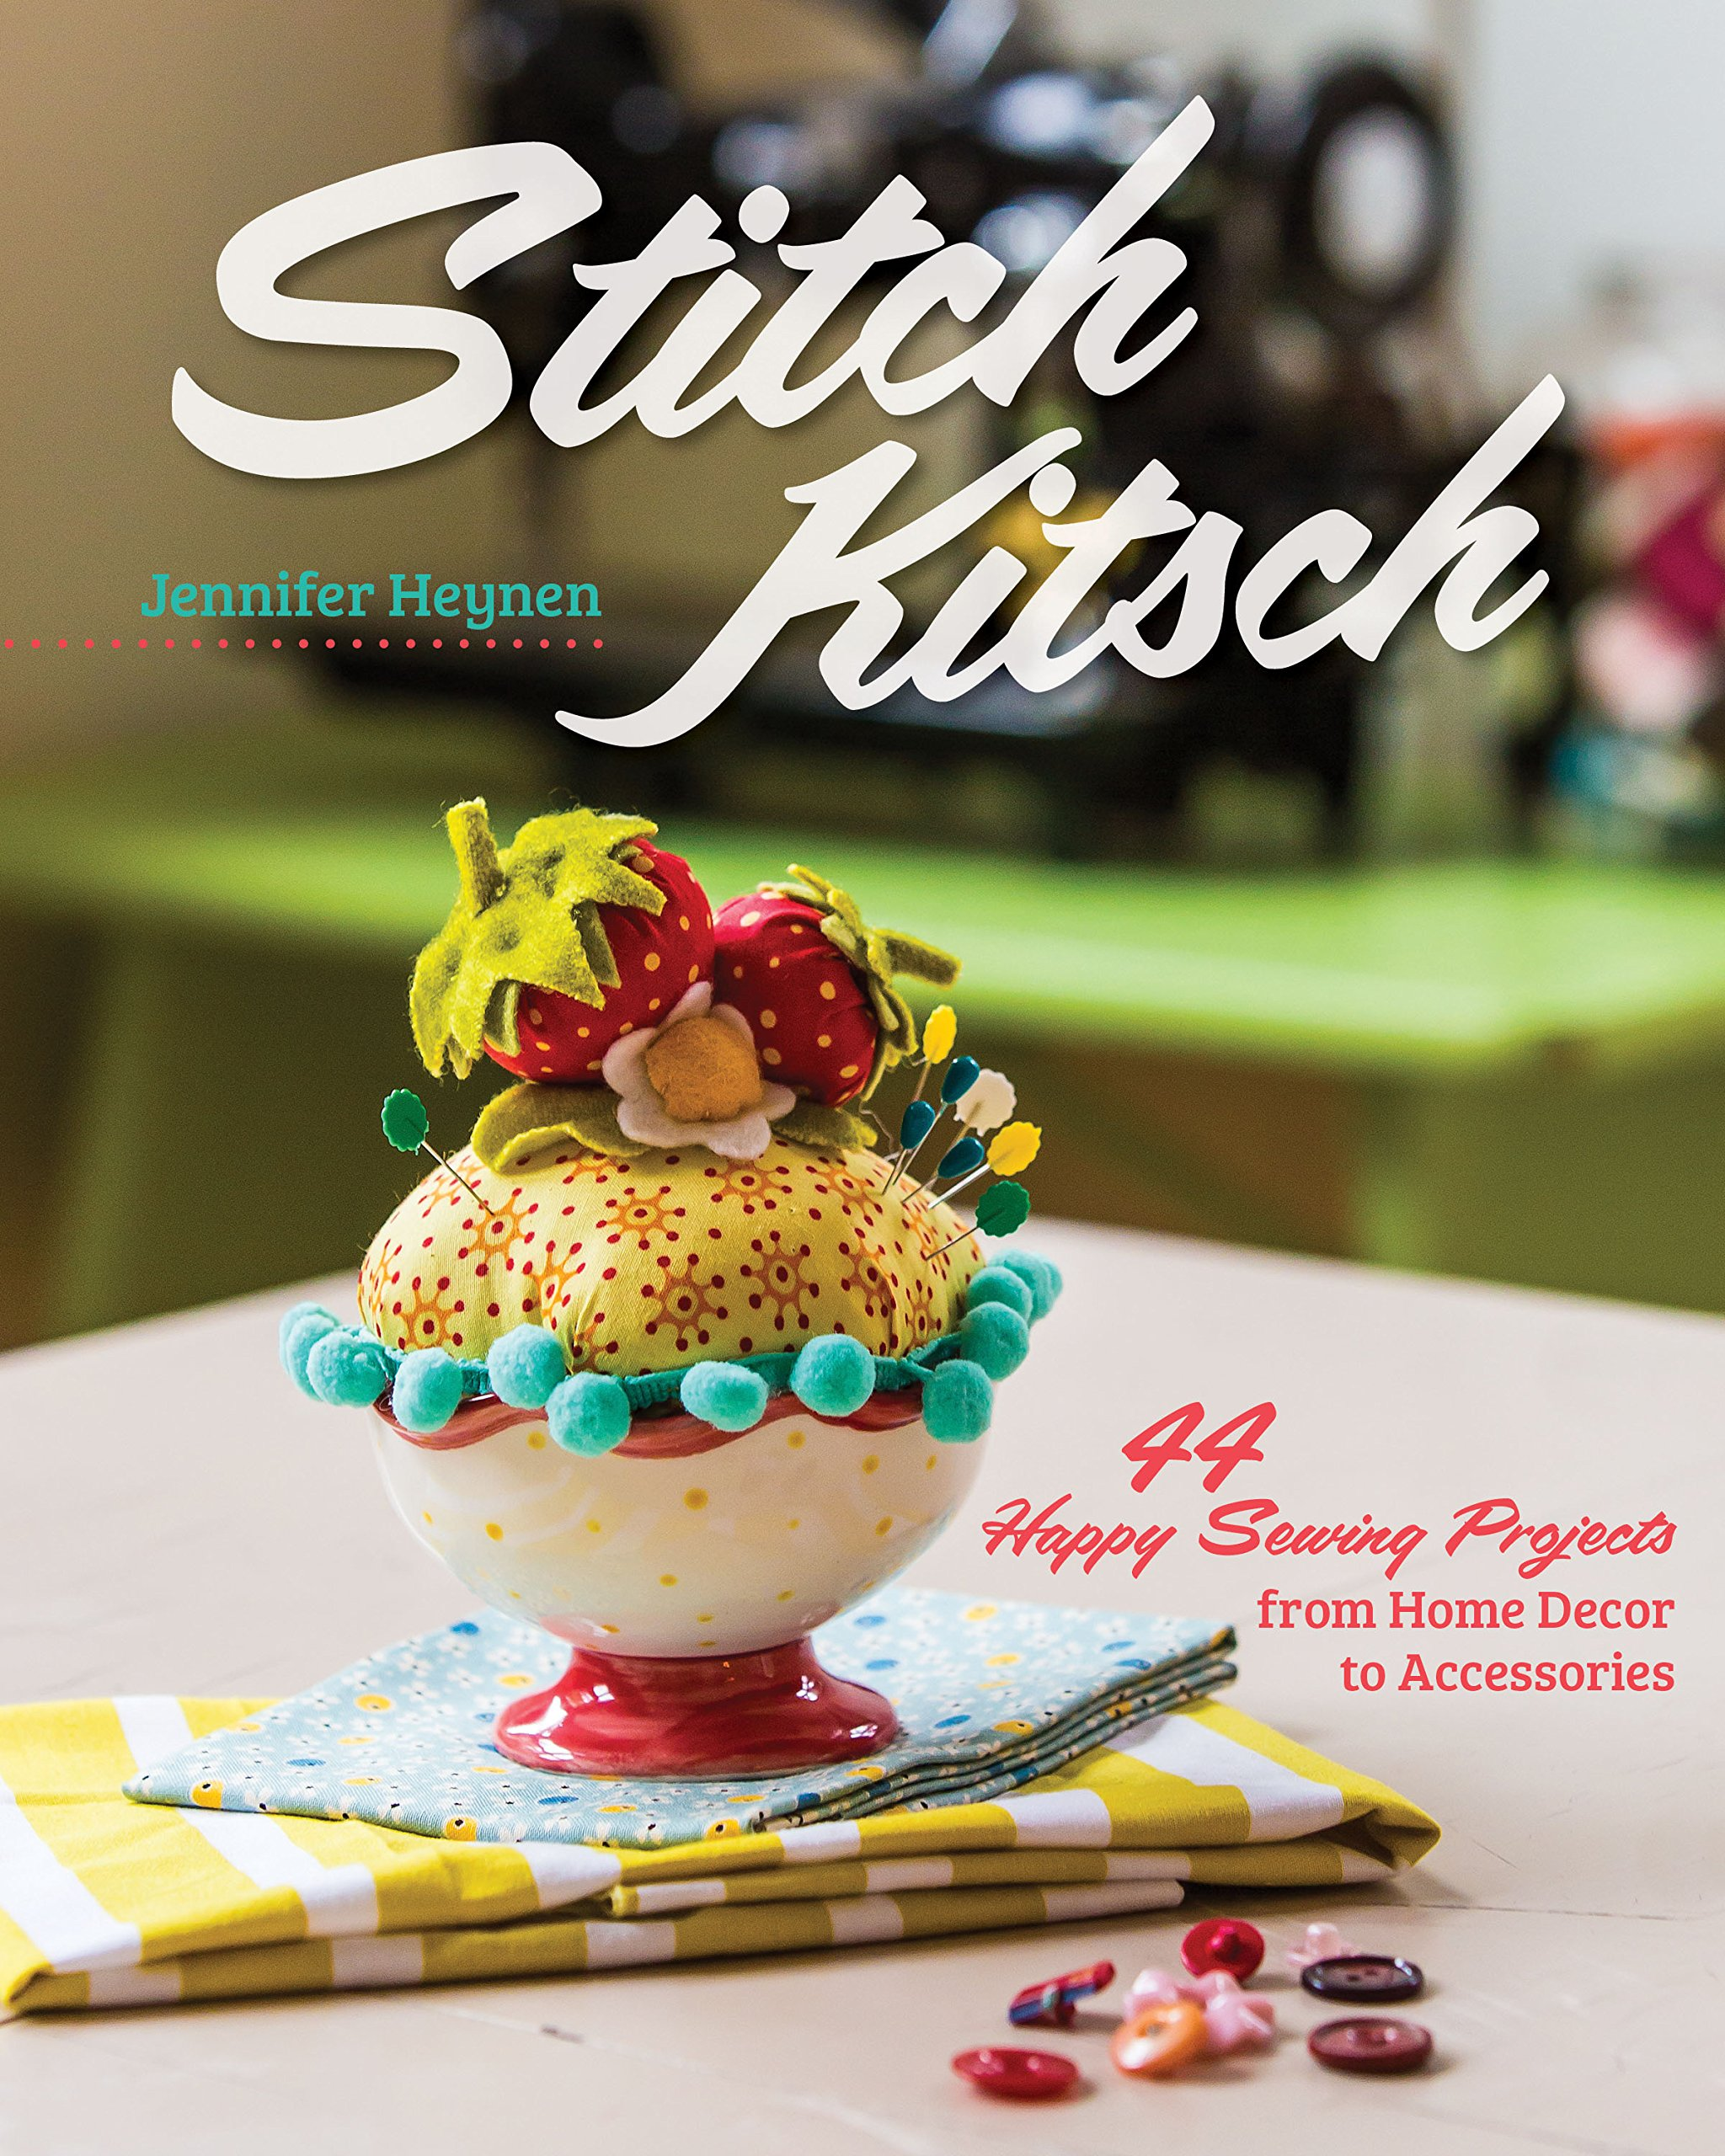 stitch-kitsch-44-happy-sewing-projects-from-home-dcor-to-accessories